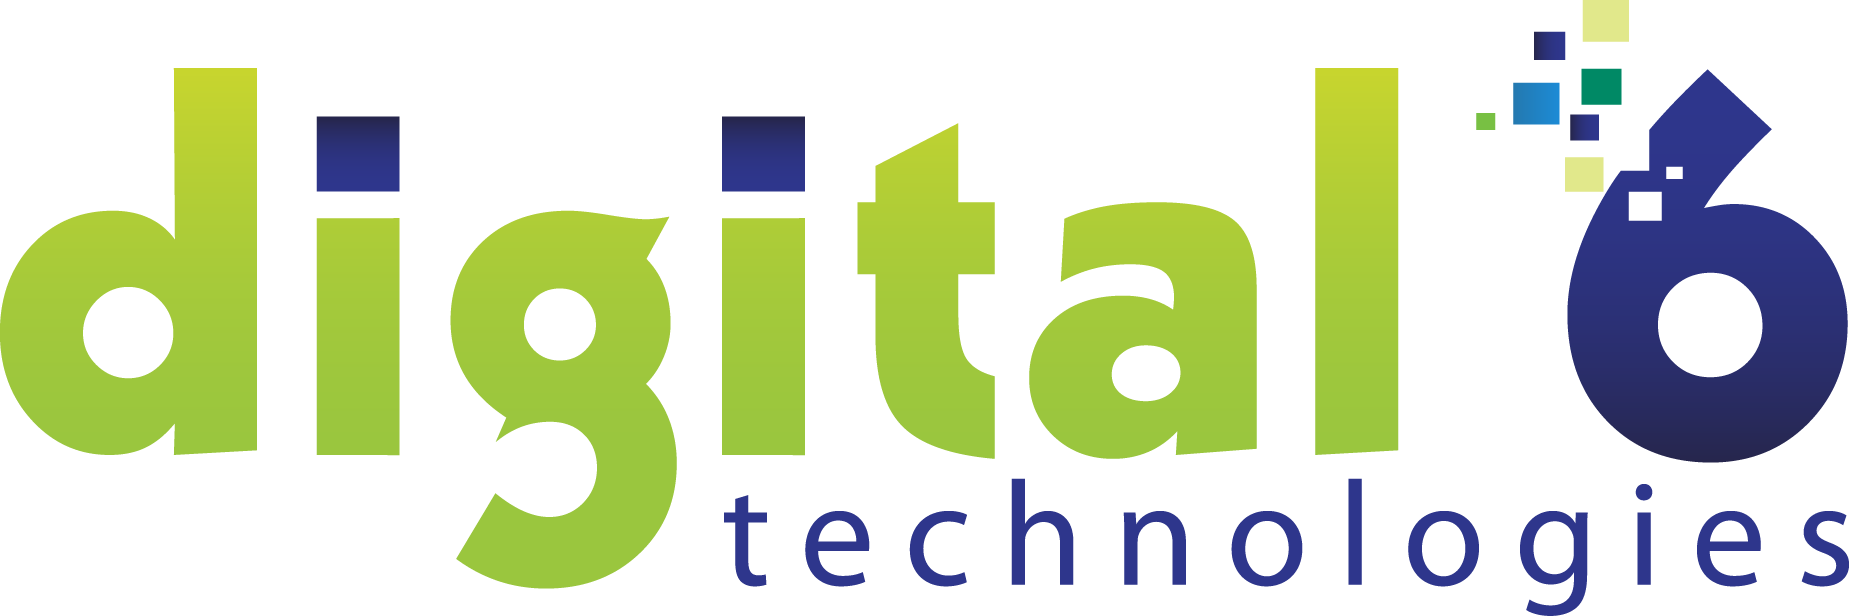 Digital6 Technologies